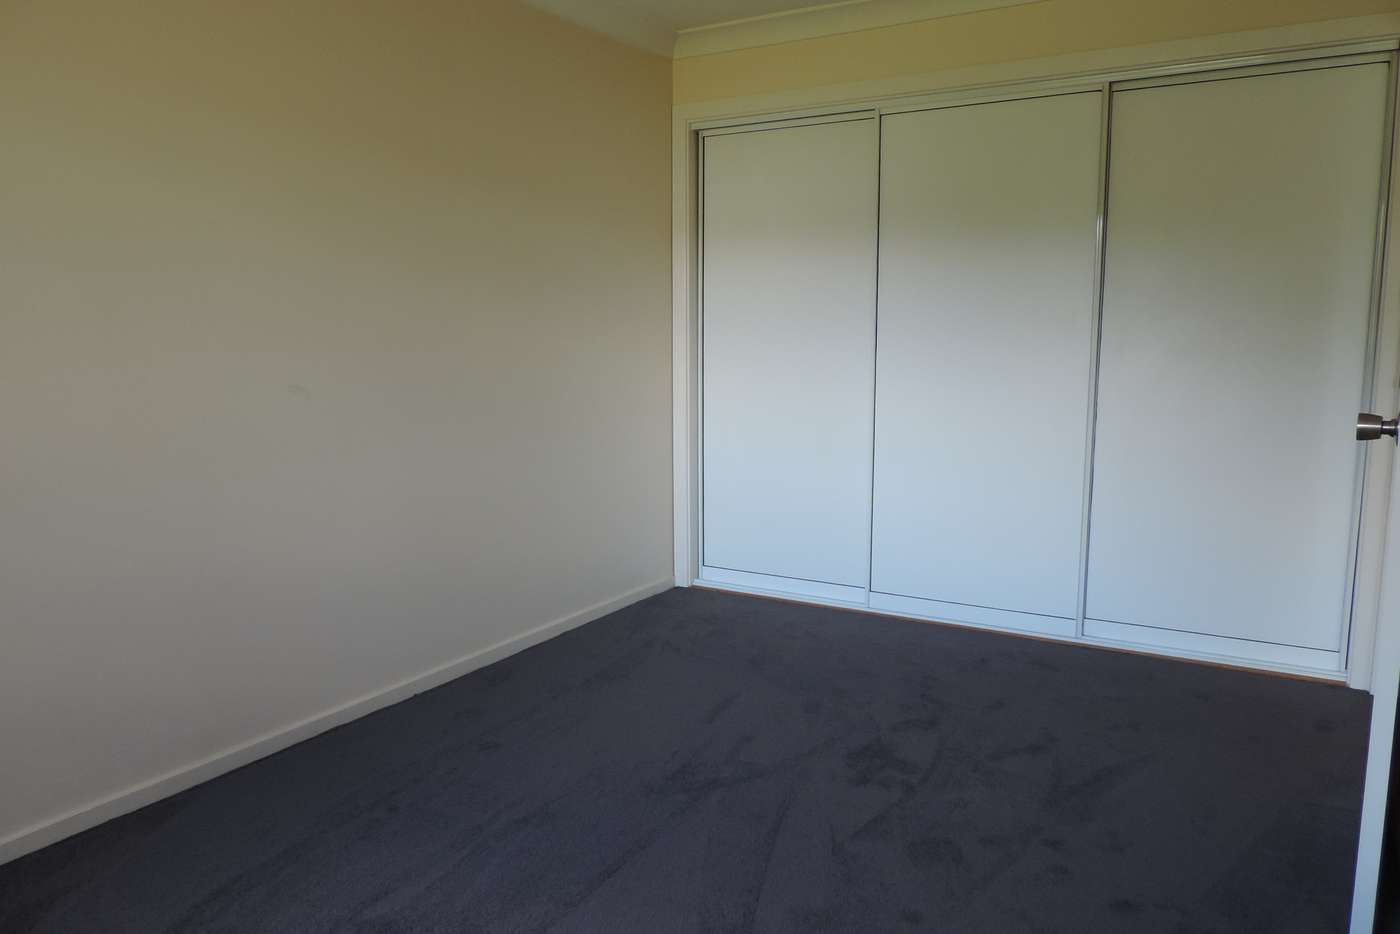 Sixth view of Homely house listing, 3 Avoca Street, Goulburn NSW 2580